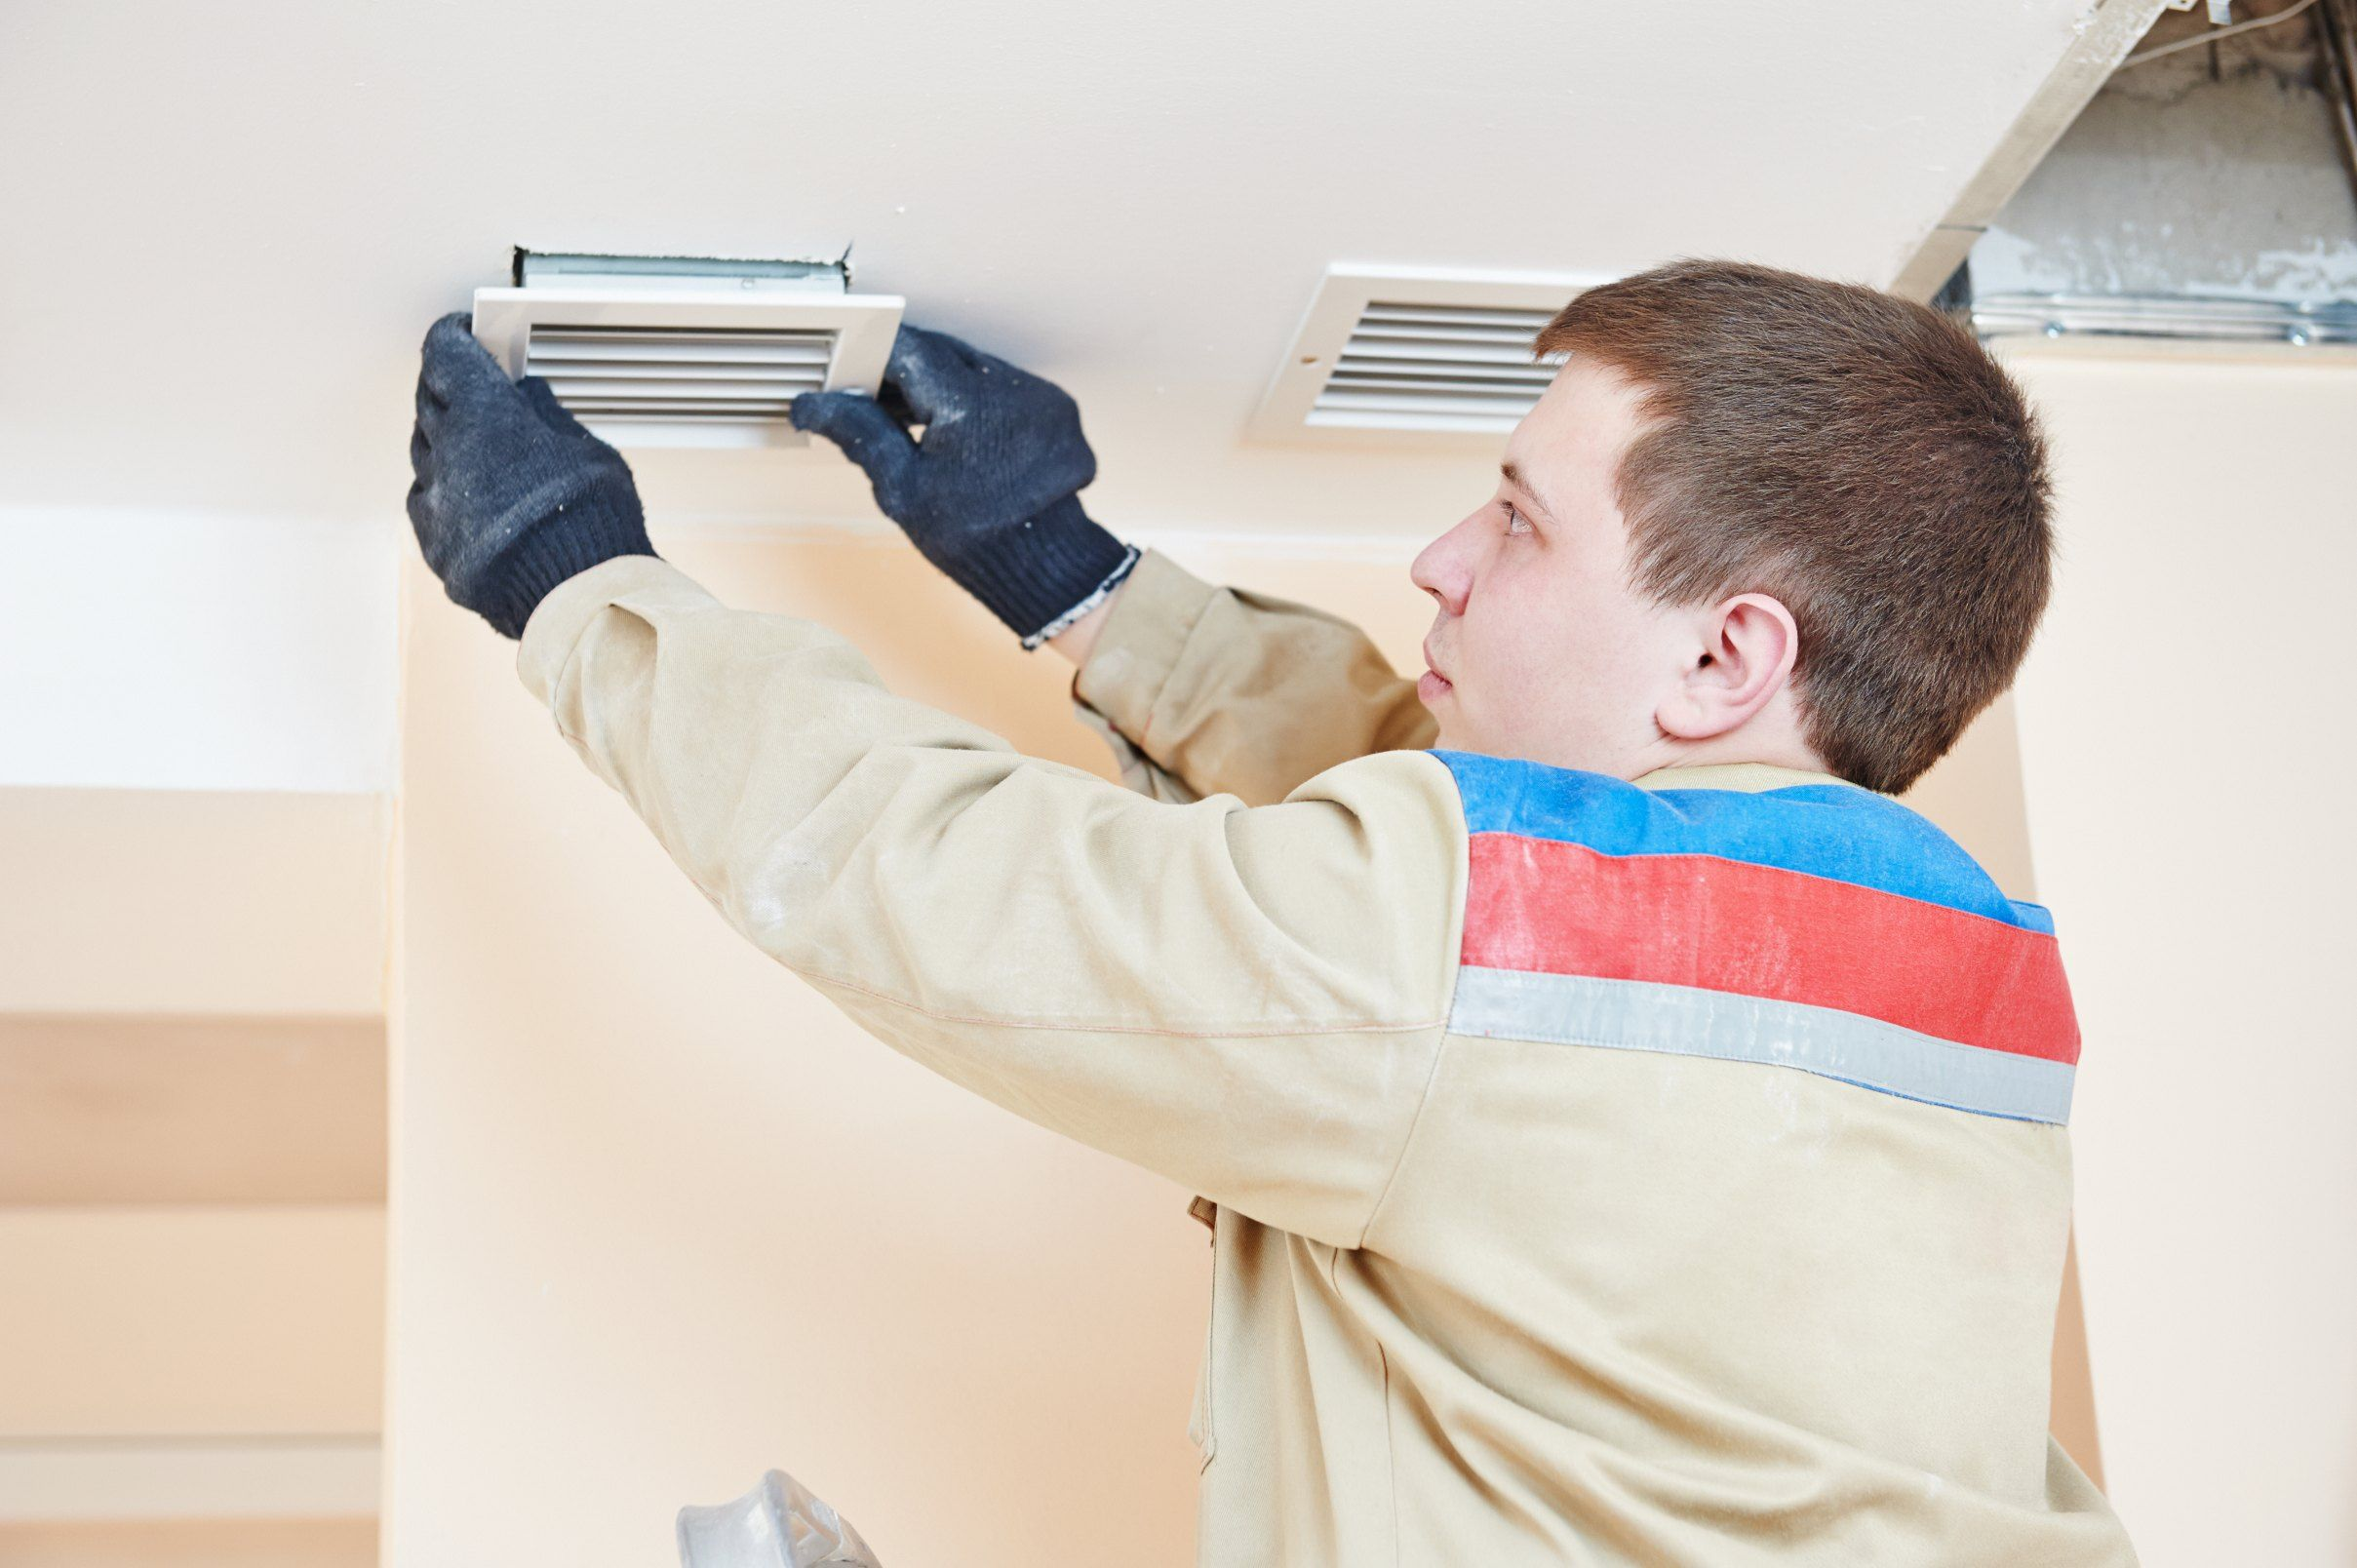 Empire Air Duct Cleaning Tempe provides professional